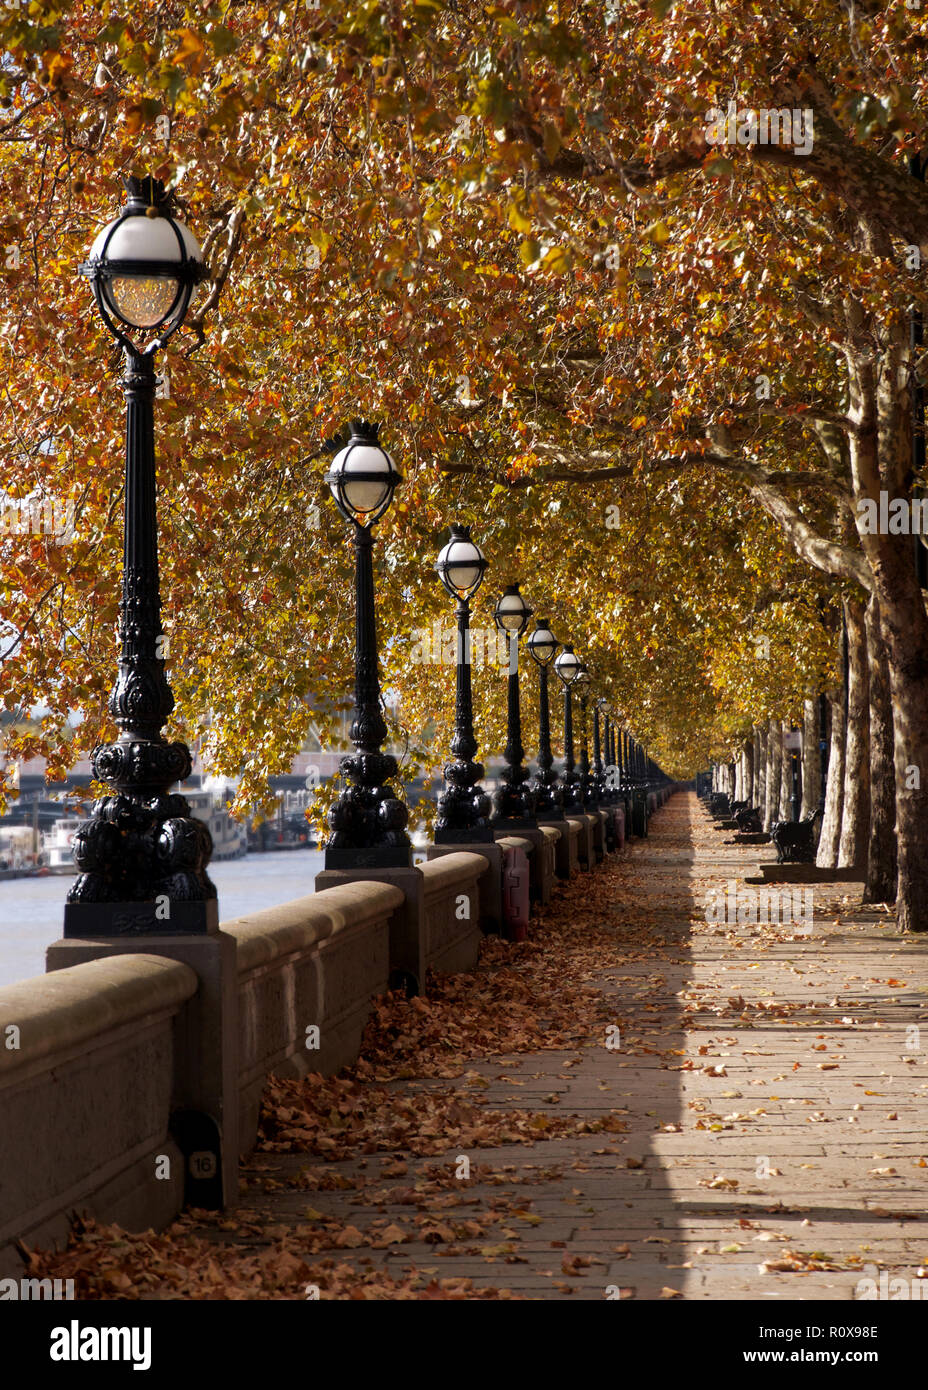 Chelsea Embankment High Resolution Stock Photography And Images Alamy